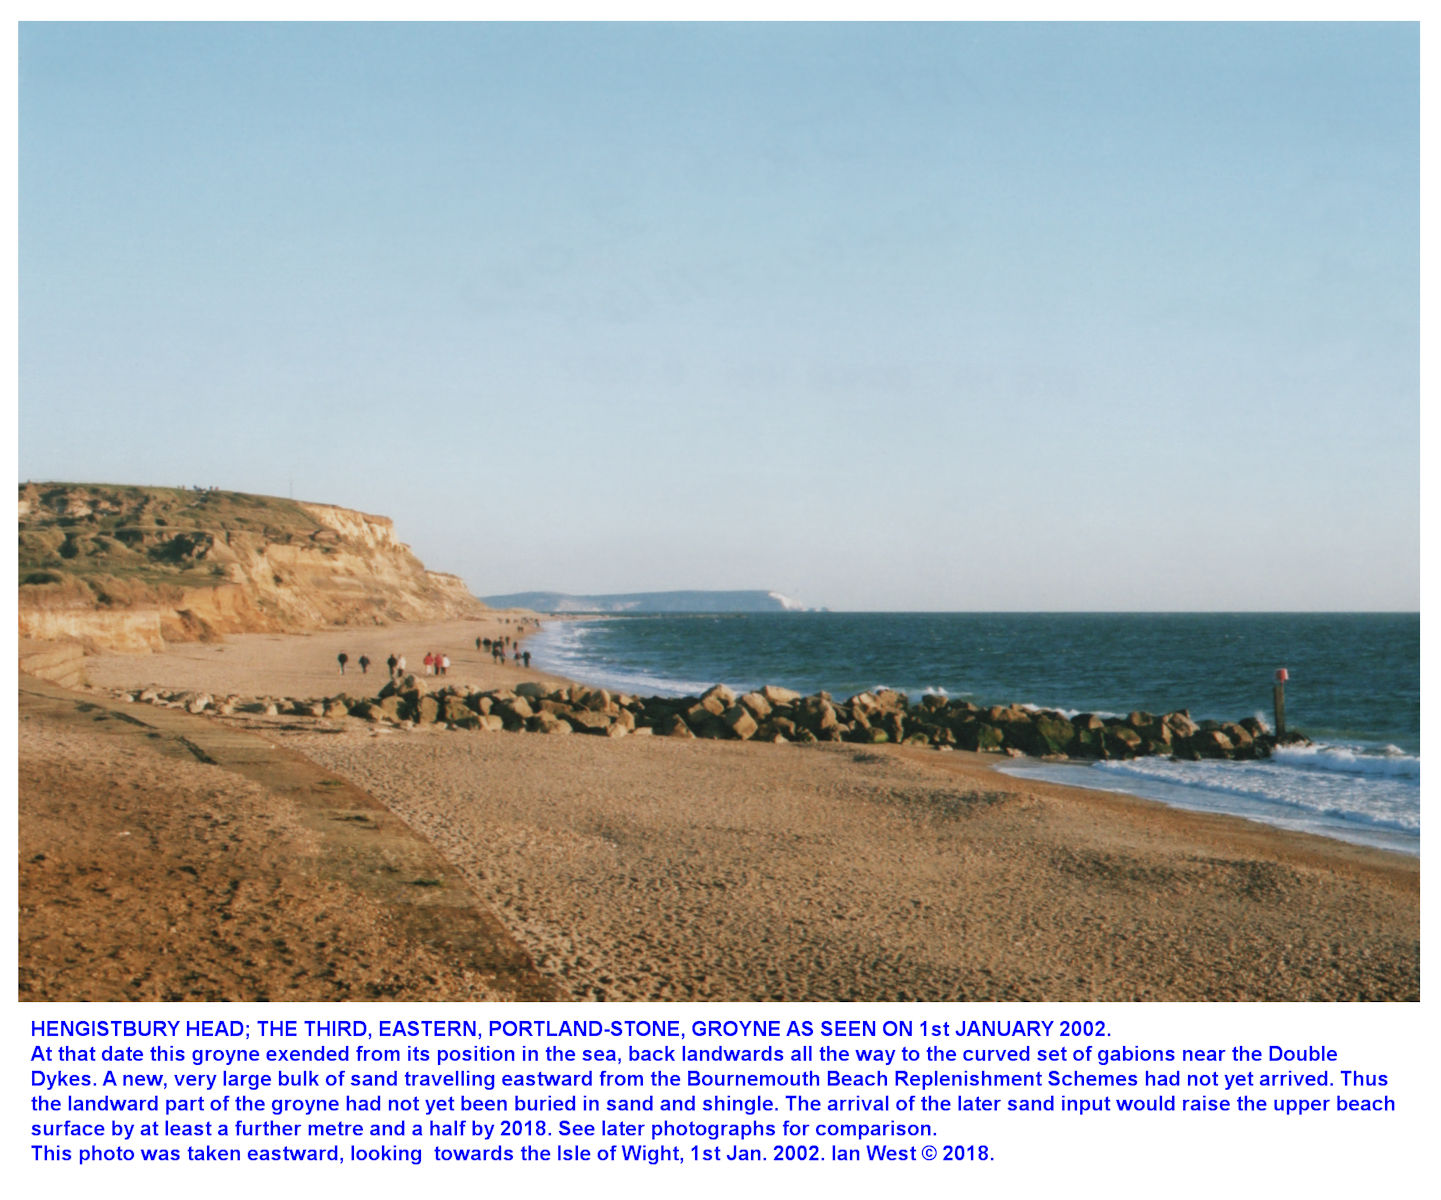 Hengistbury Head, Bournemouth, Dorset, seen from near the southern end of the Double Dykes, 1st January 2002, at this date the Portland Stone groyne extended from within the sea, back to the cliff